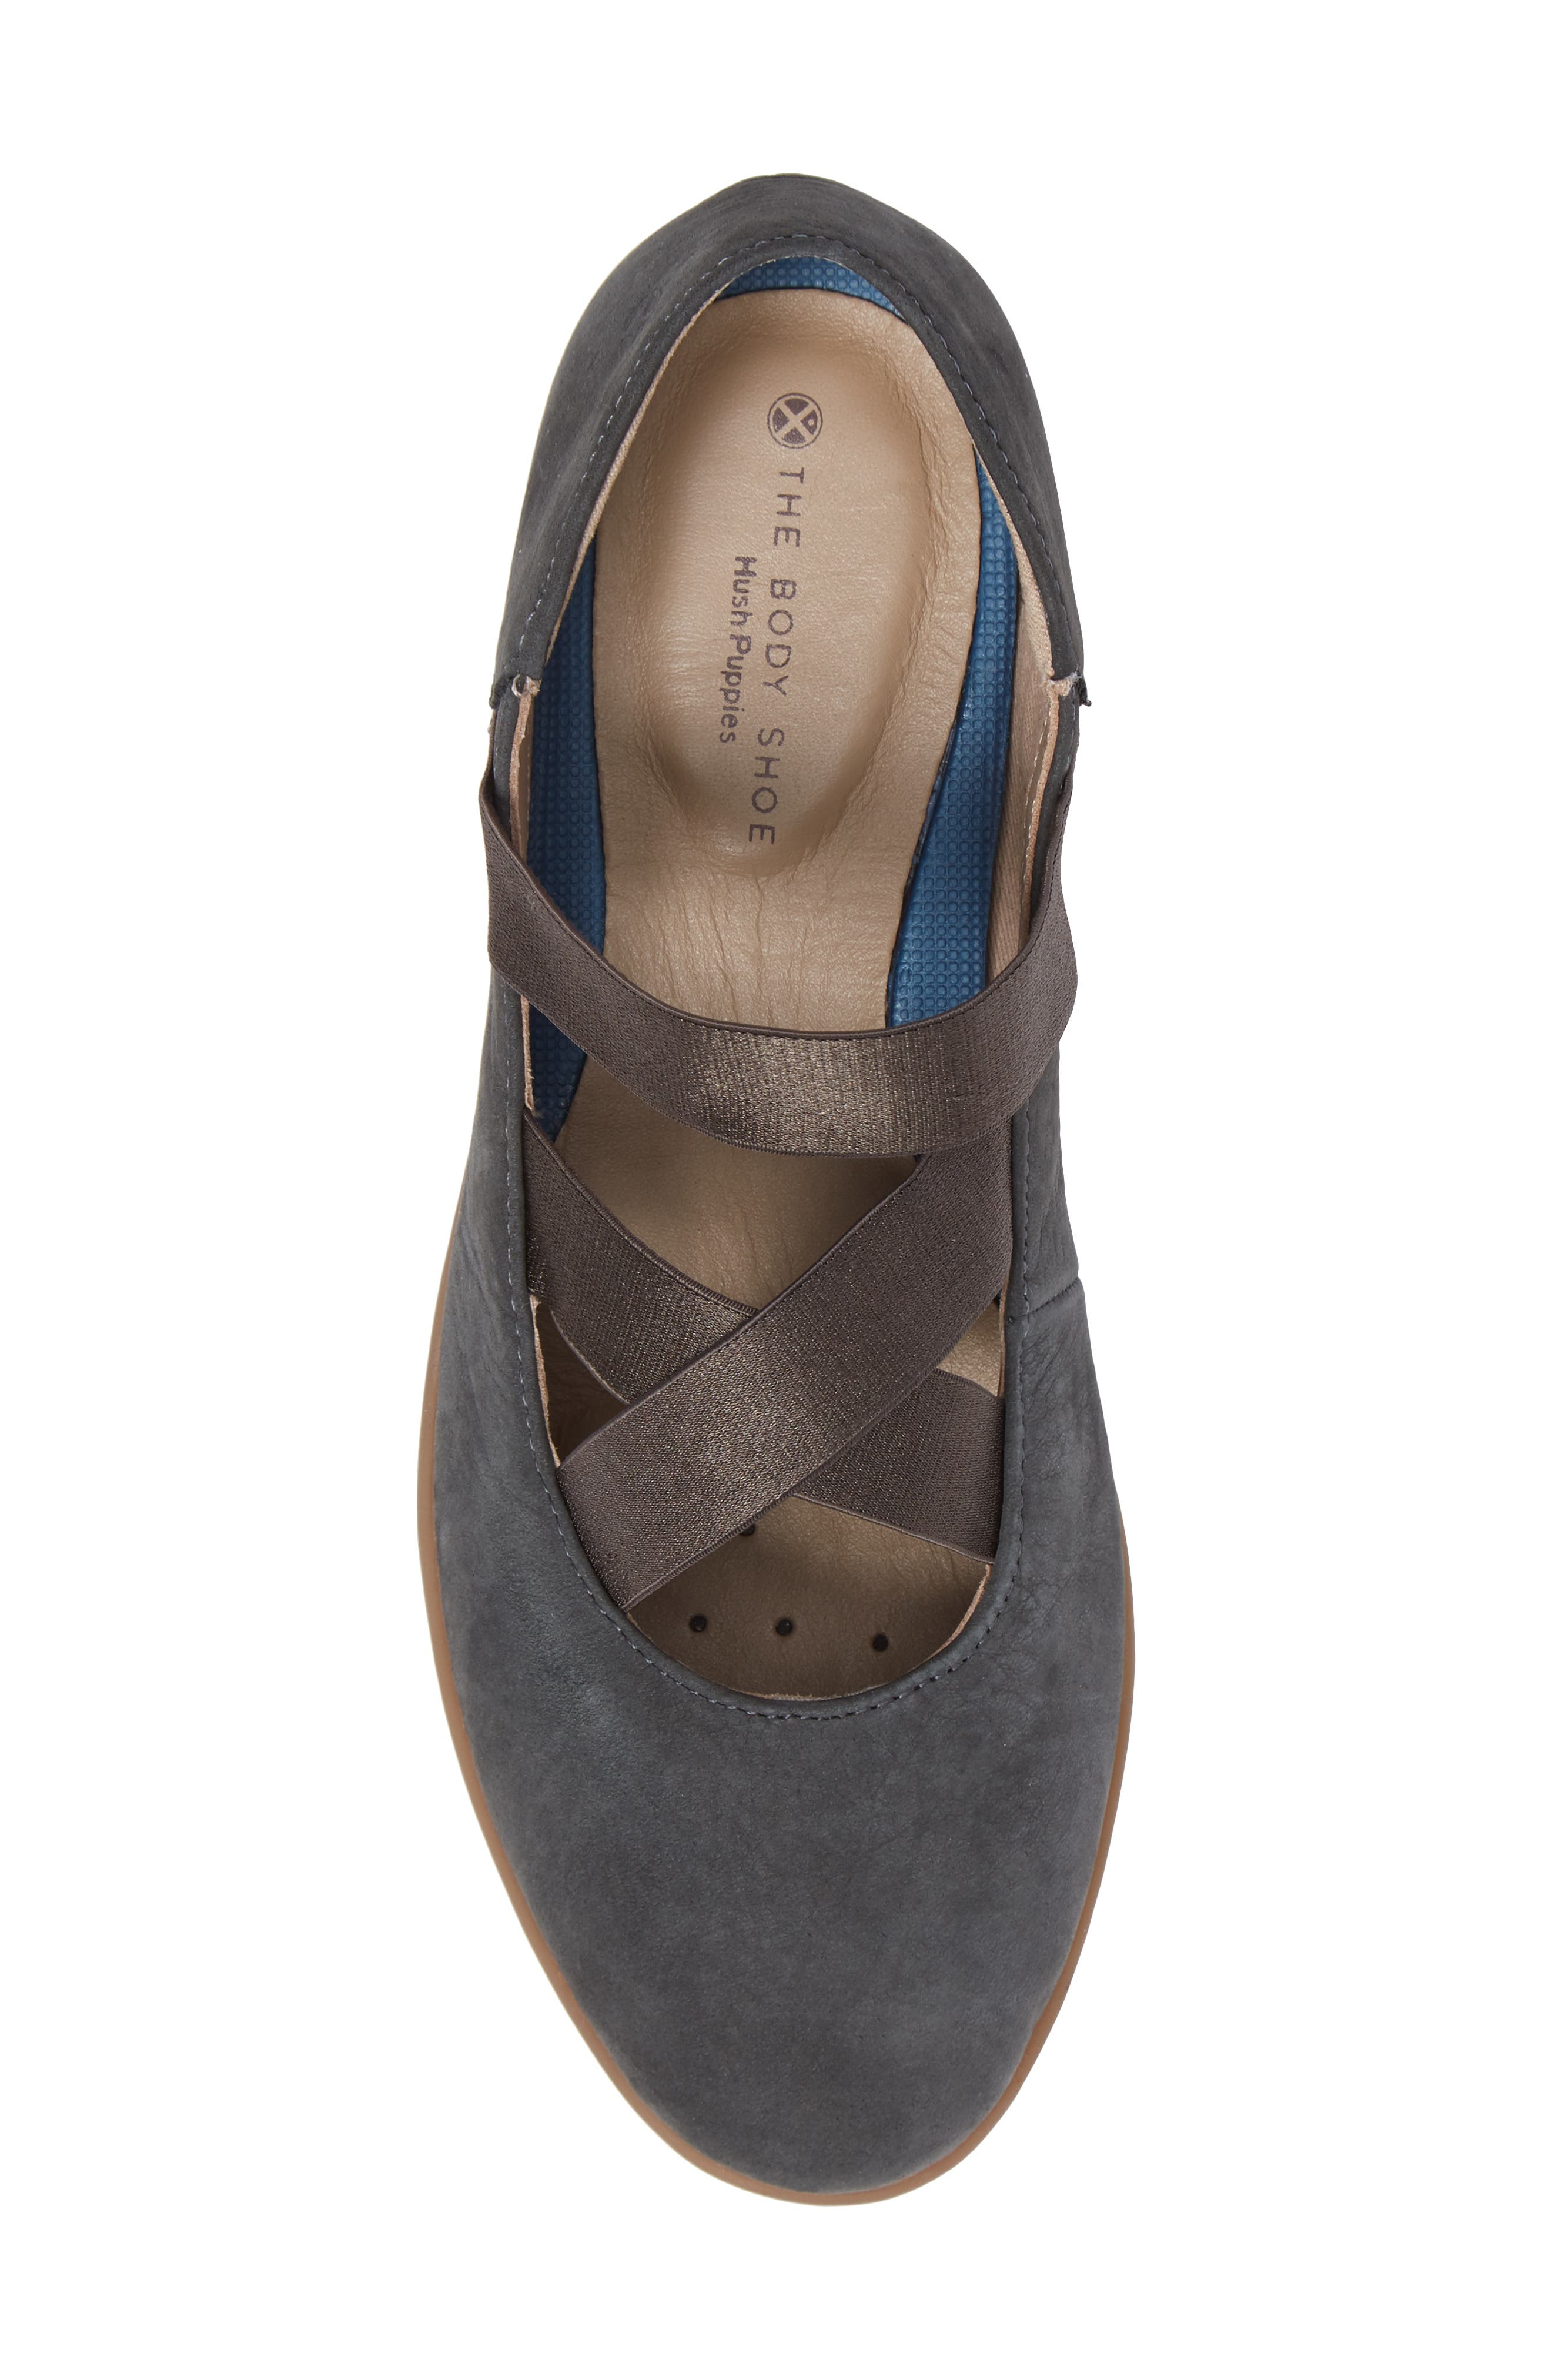 Meree Madrine Cross Strap Flat,                             Alternate thumbnail 24, color,